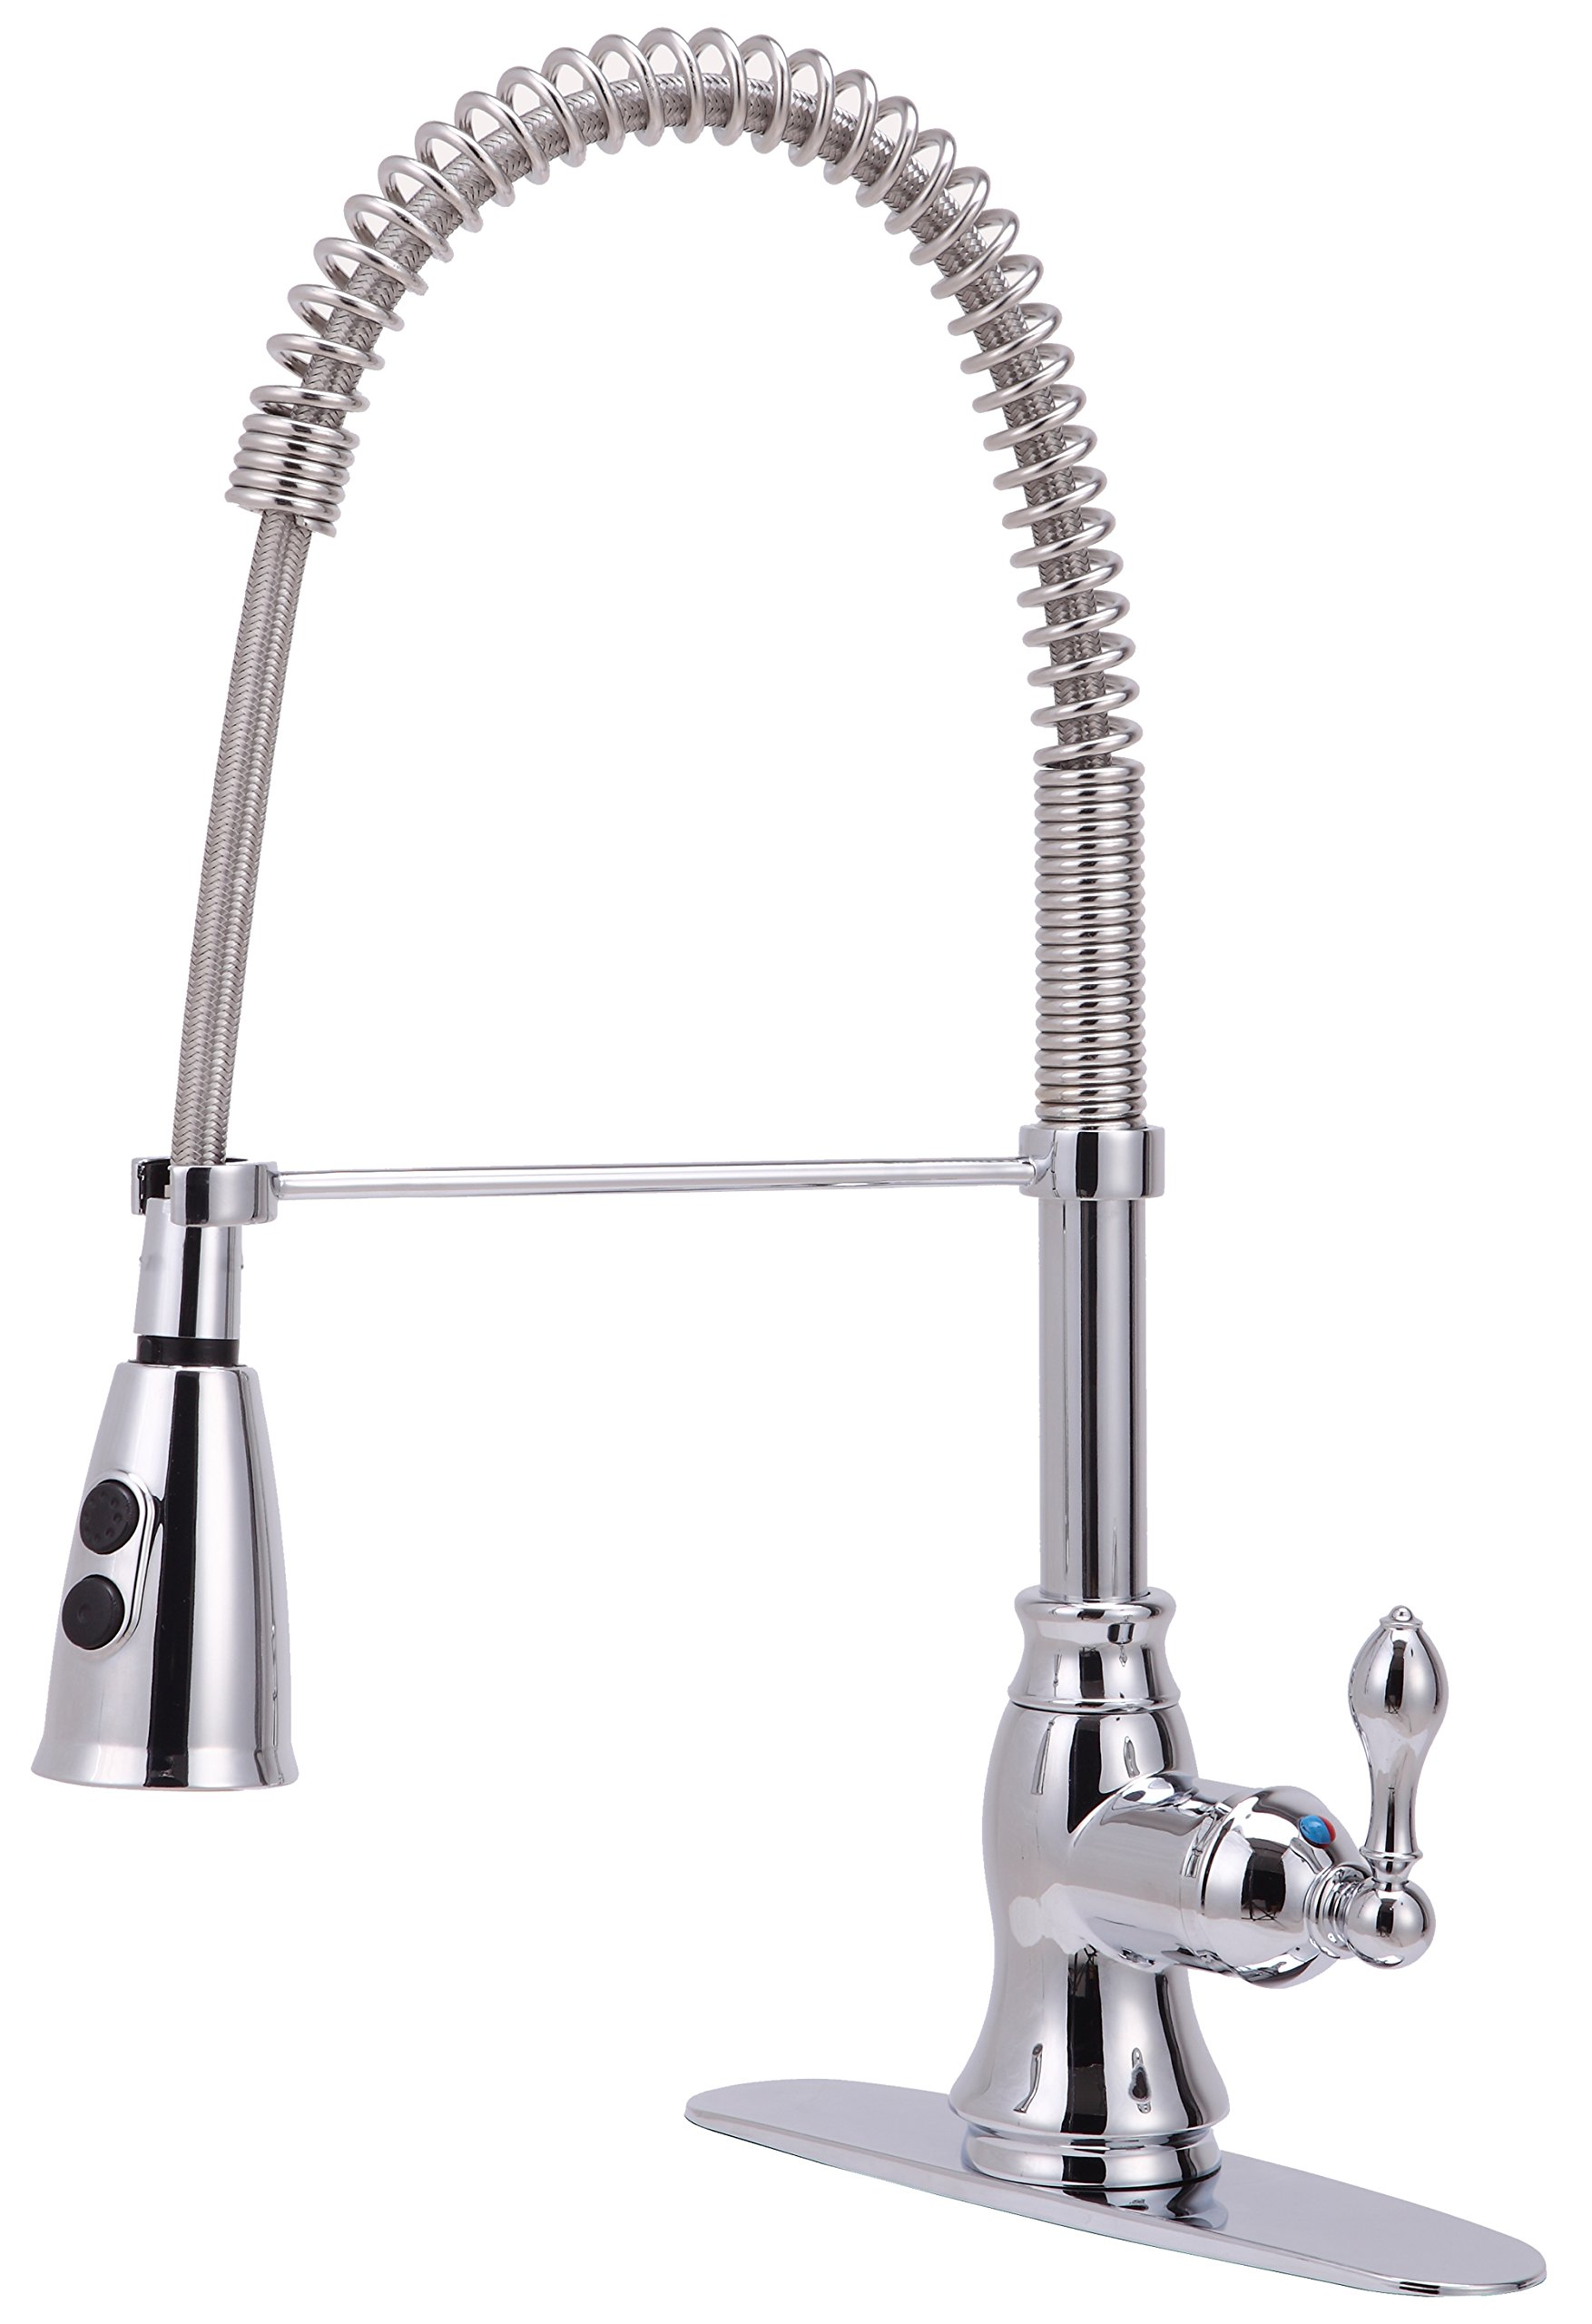 Derengge KF-5988-CP Single Handle Spring Spout Kitchen Faucet with Pull-Down Sprayer, 1 Hole or 3 Hole Installation, Meets cUPC NSF61-9 and AB1953 Lead Free Standard, Chrome